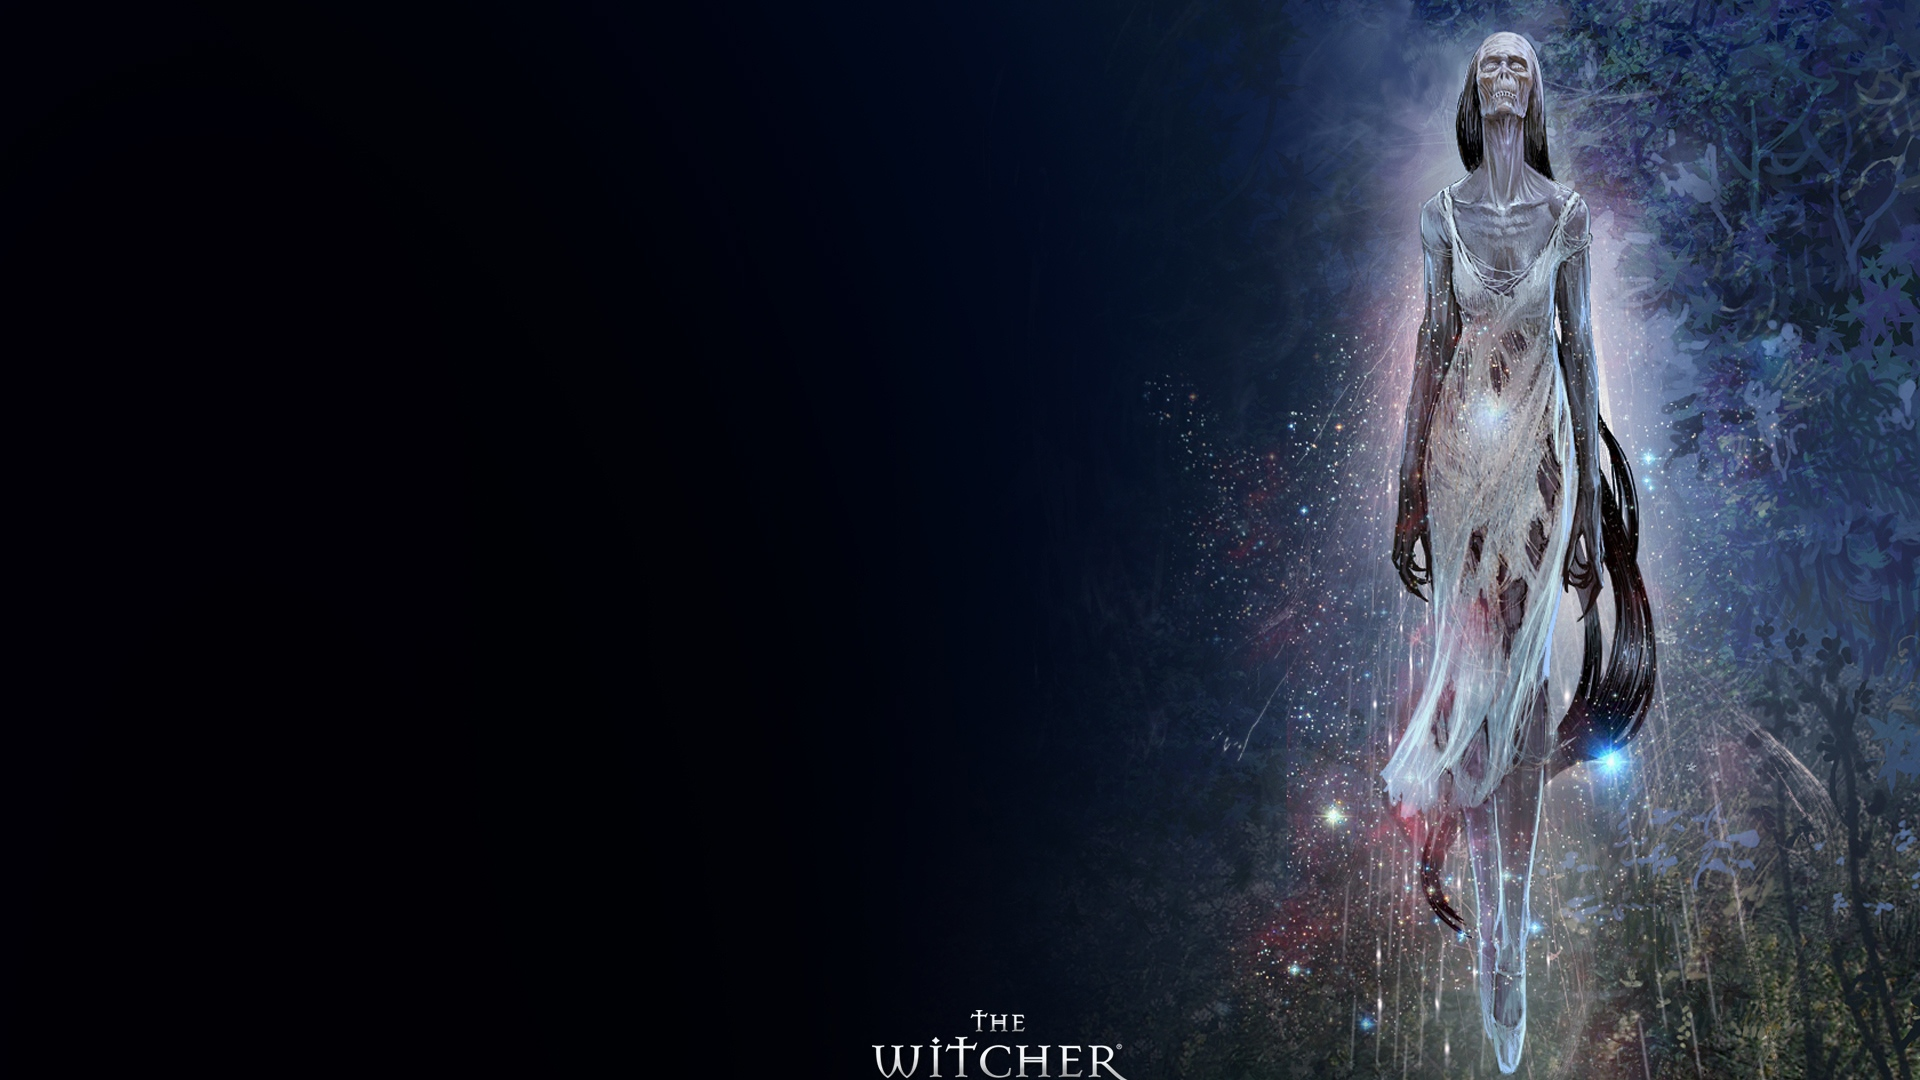 Download Wallpaper 1920x1080 The Witcher Girl Zombi Trees Full